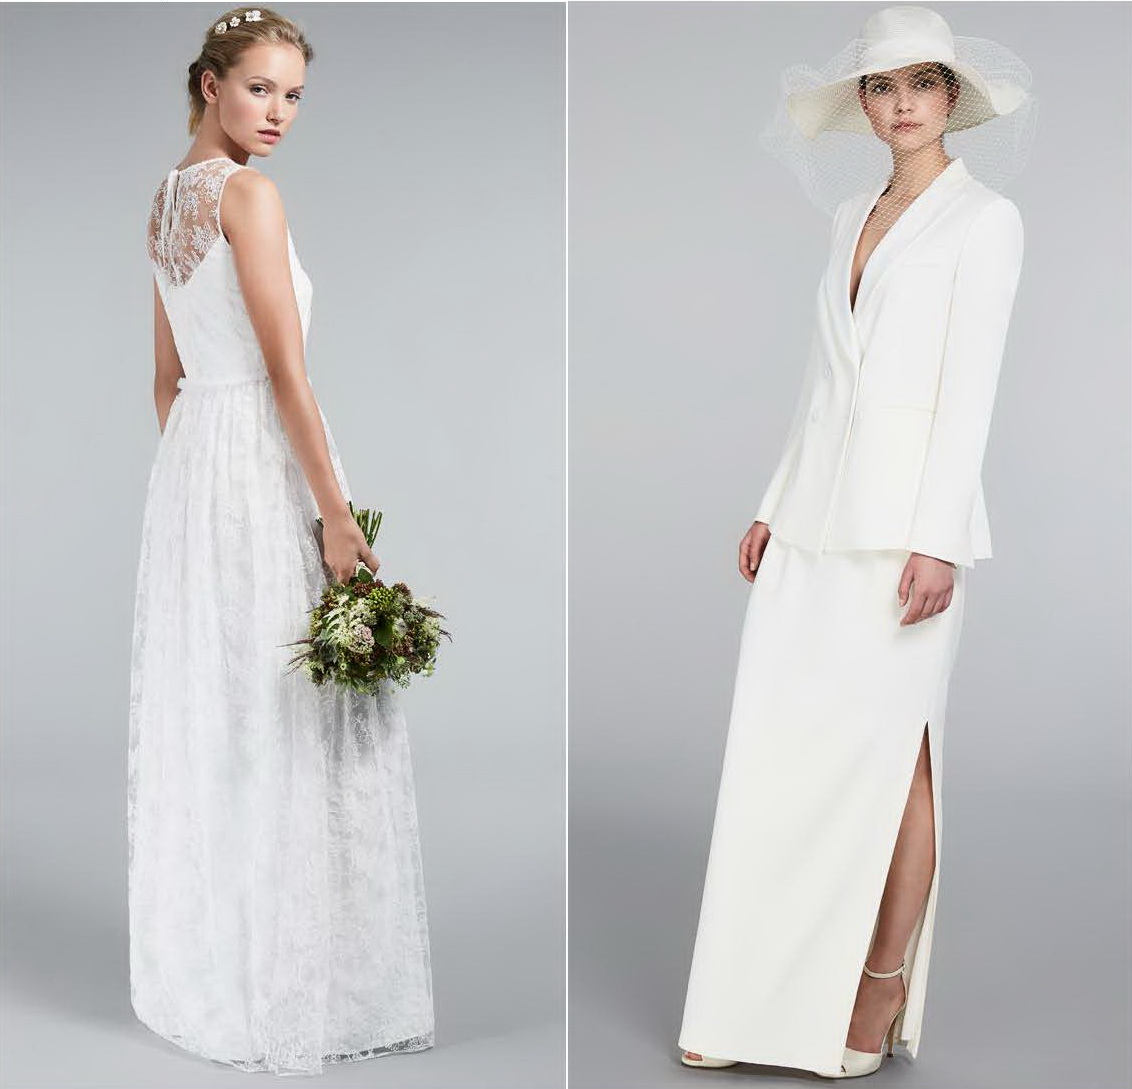 To acquire Max fall mara bridal collection picture trends